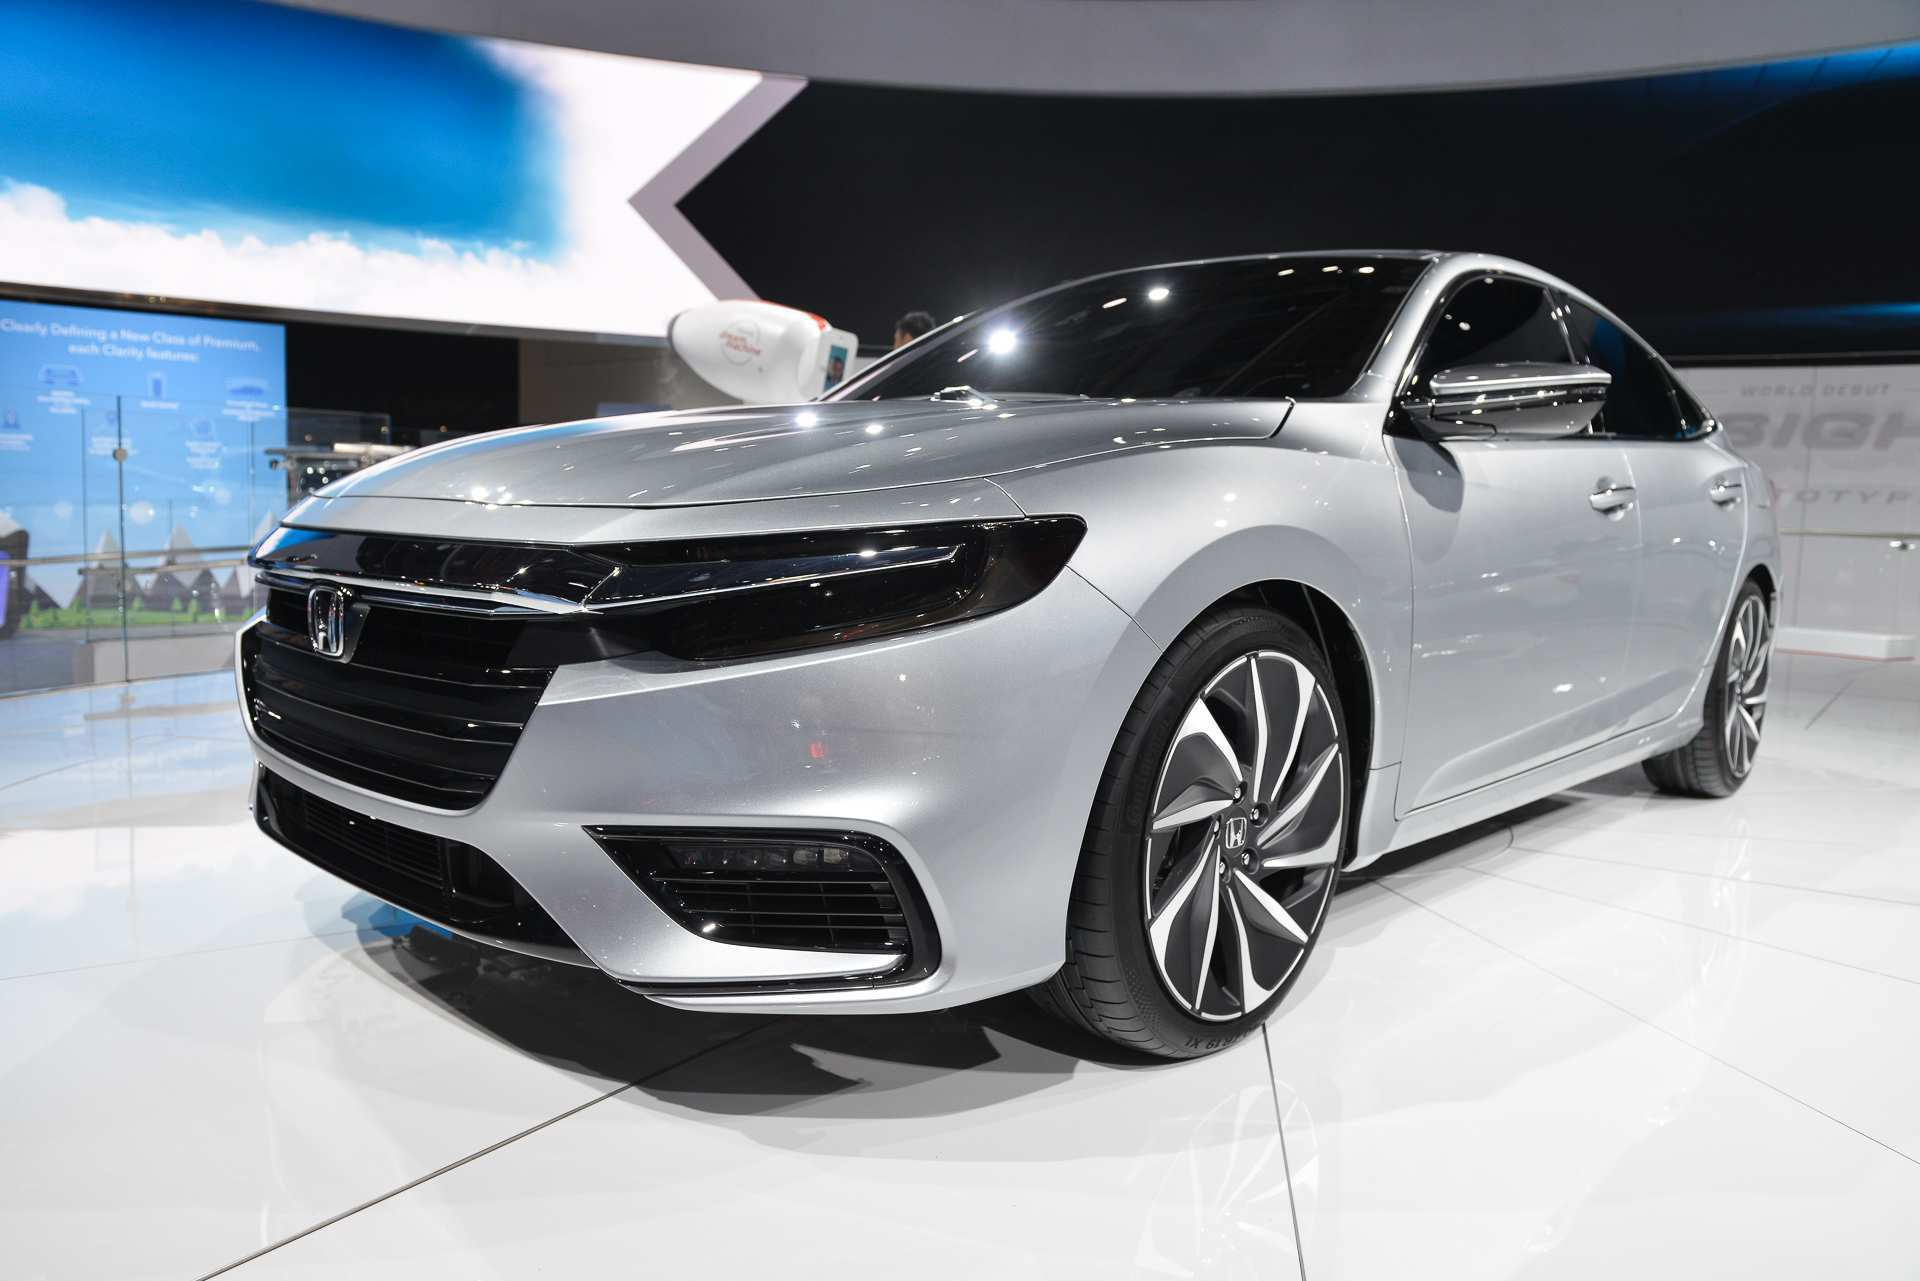 82 Gallery of 2019 Honda Electric Car Release Date by 2019 Honda Electric Car